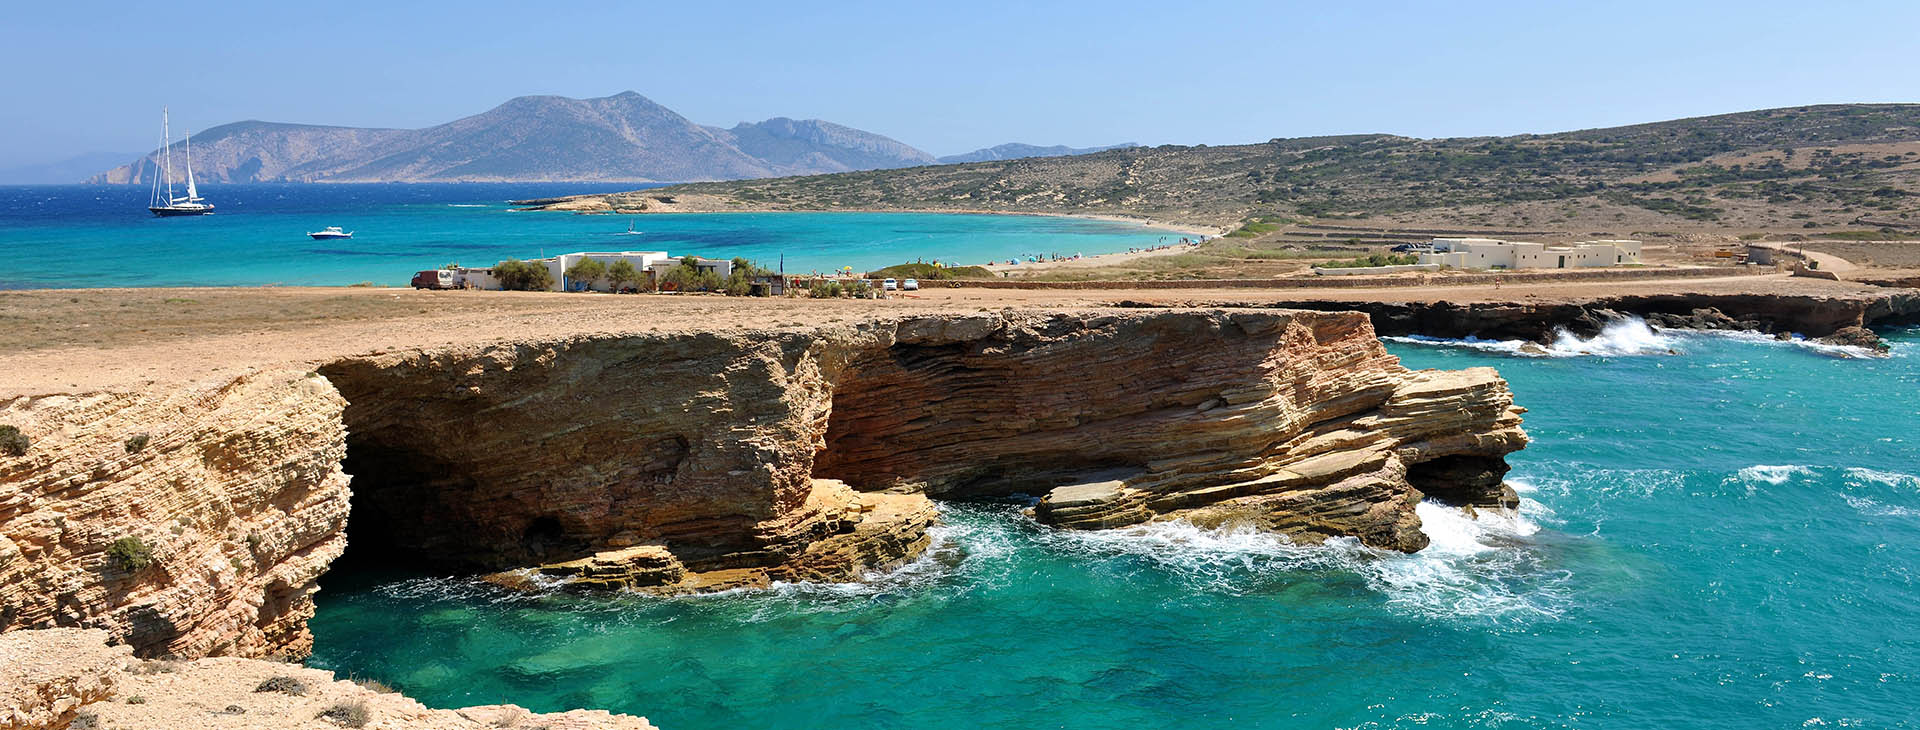 Koufonisia islands